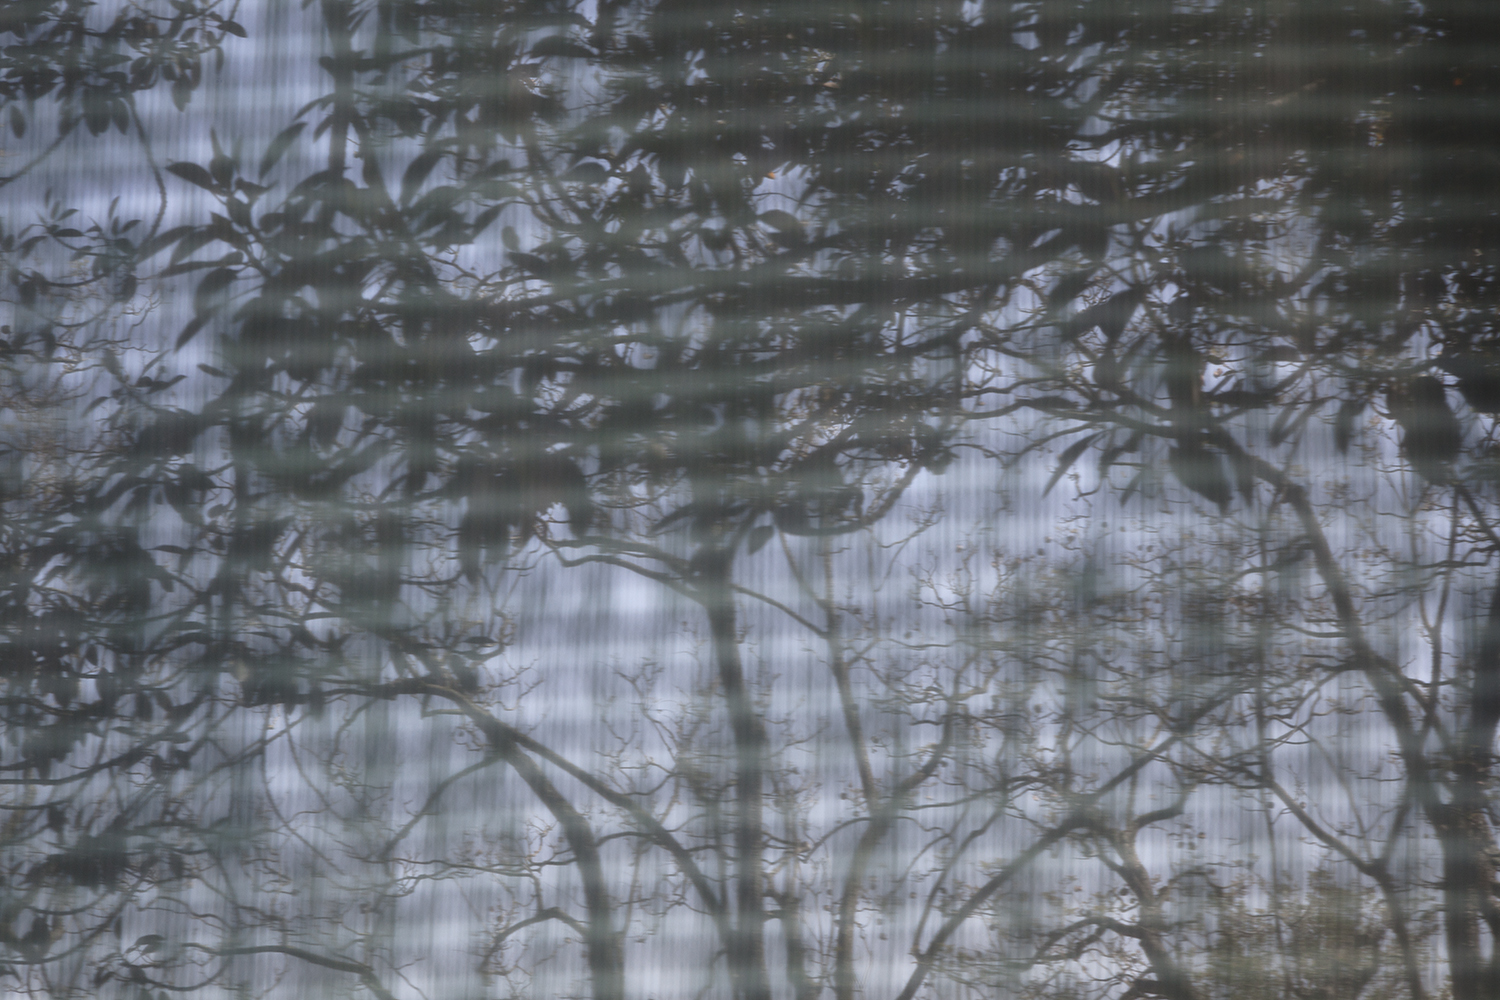 carina martins, urupe - nature reflected through windows 2